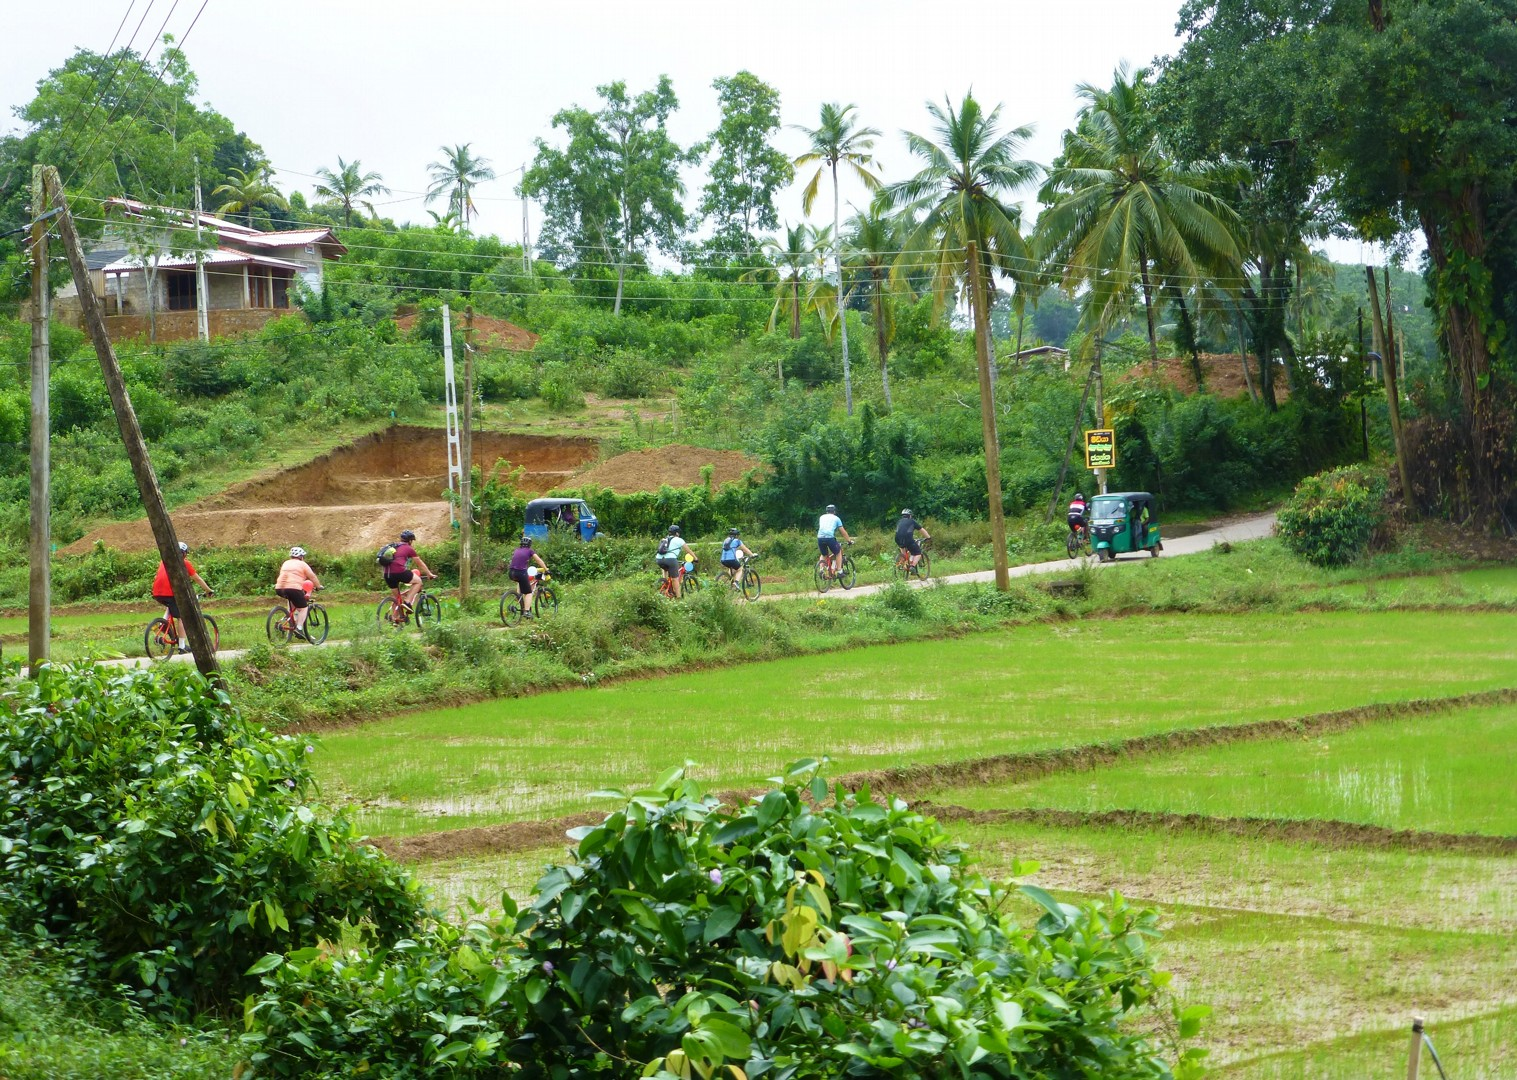 sir-lanka-guided-cycling-in-tropical-forest.jpg - Sri Lanka - Backroads and Beaches - Cycling Adventures